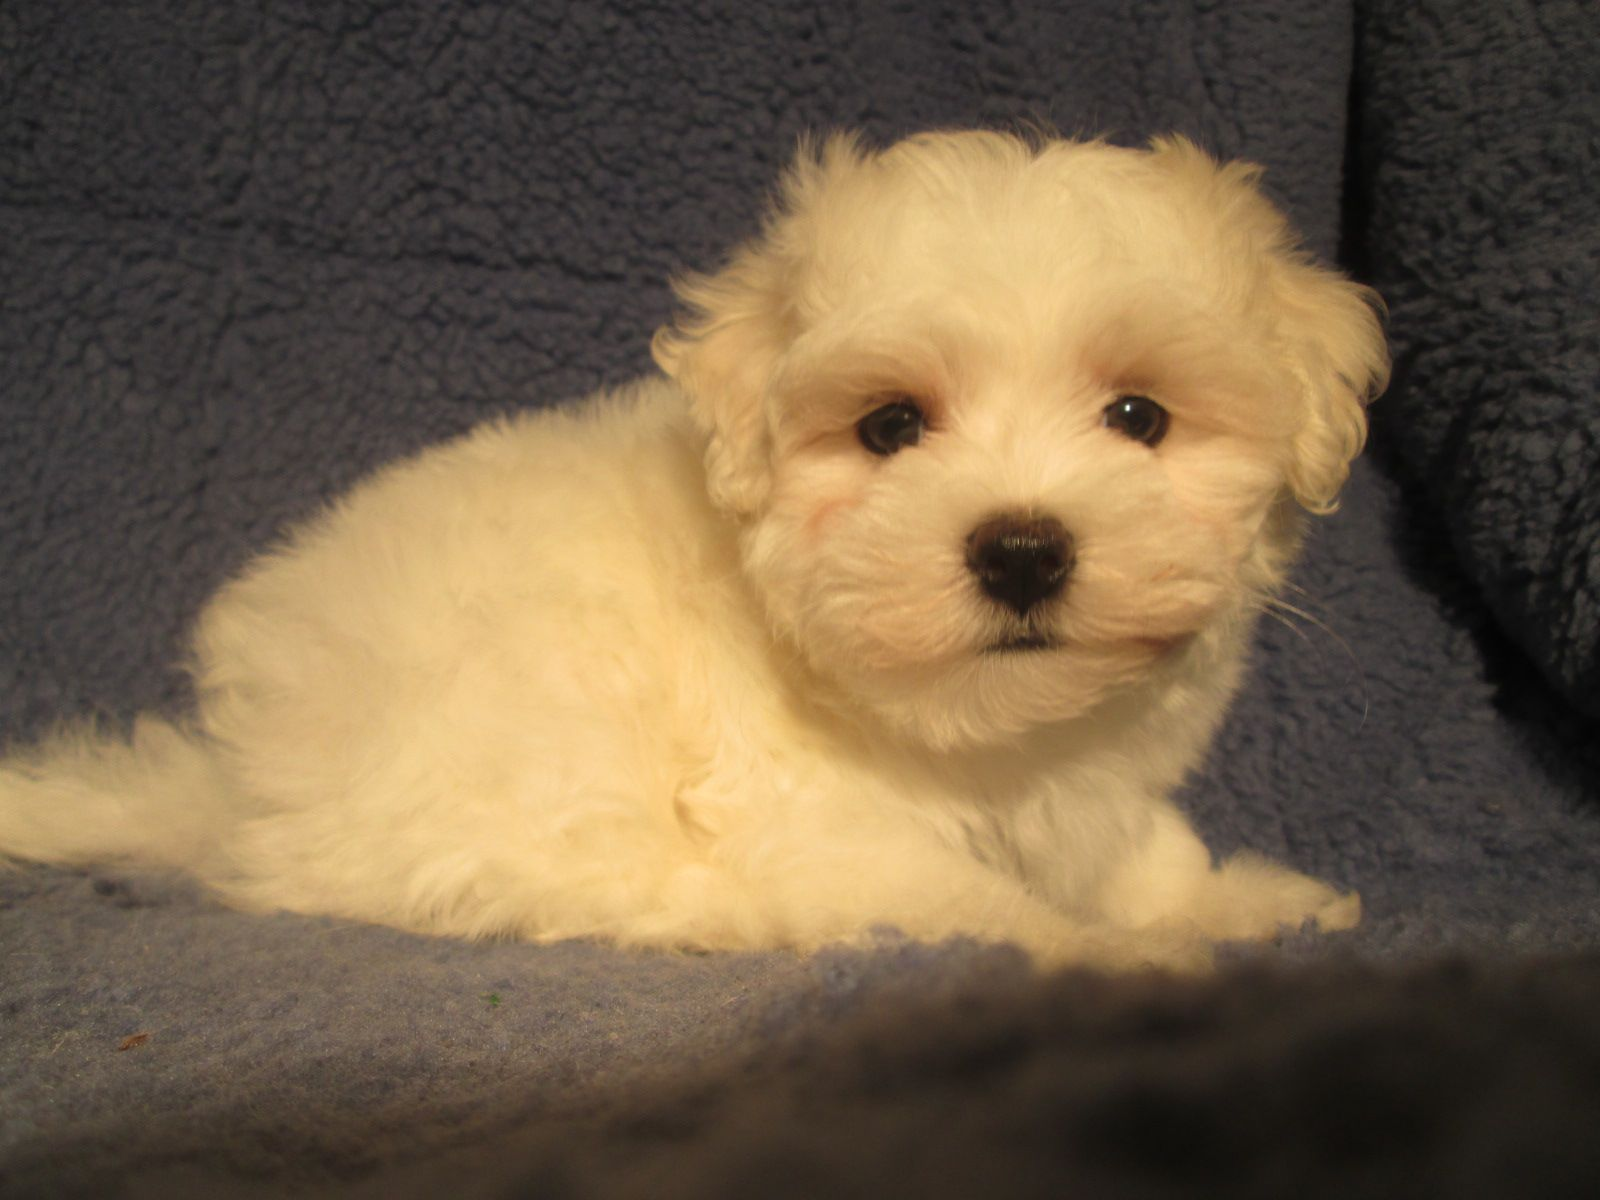 Handsome Maltese Puppies Available 8 12 Weeks Of Age Permanent Shots And Wormings Completed Along With Microchi Puppies Maltese Puppy Puppies For Sale